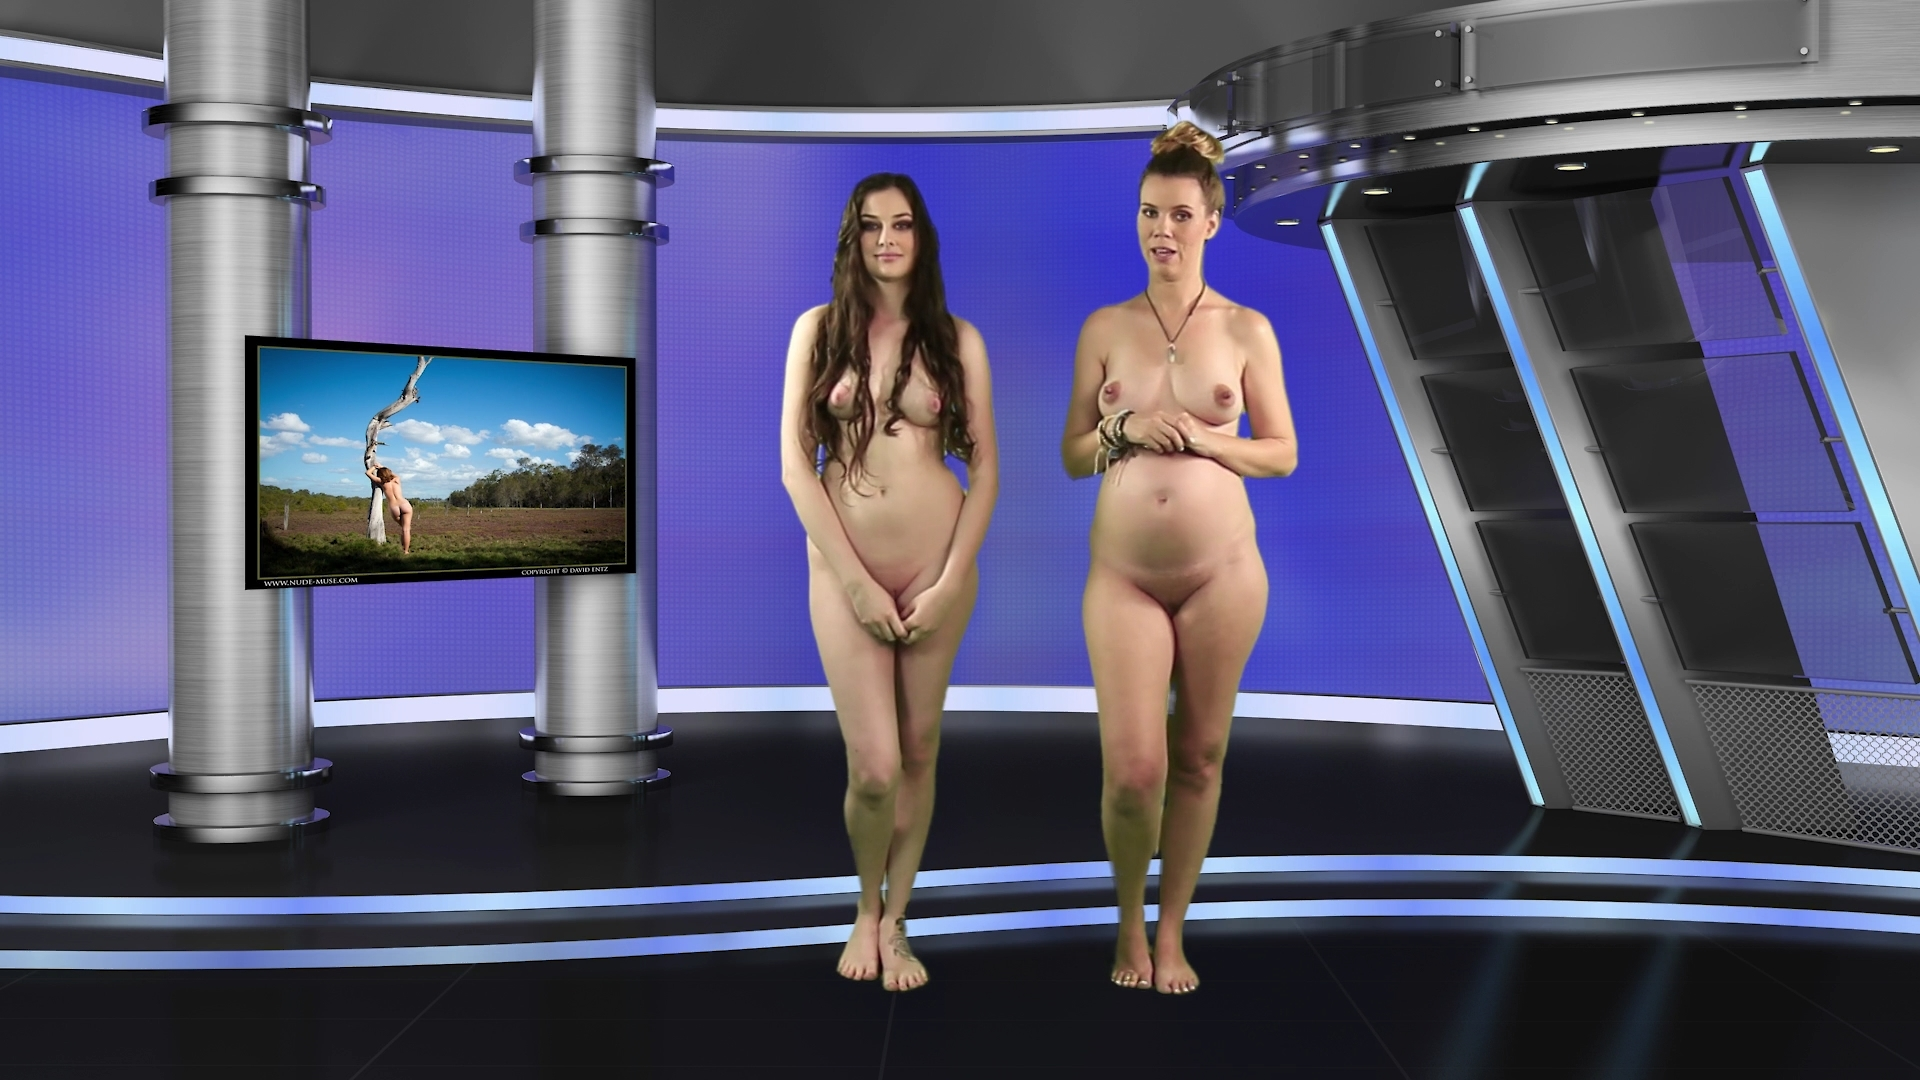 nakednews